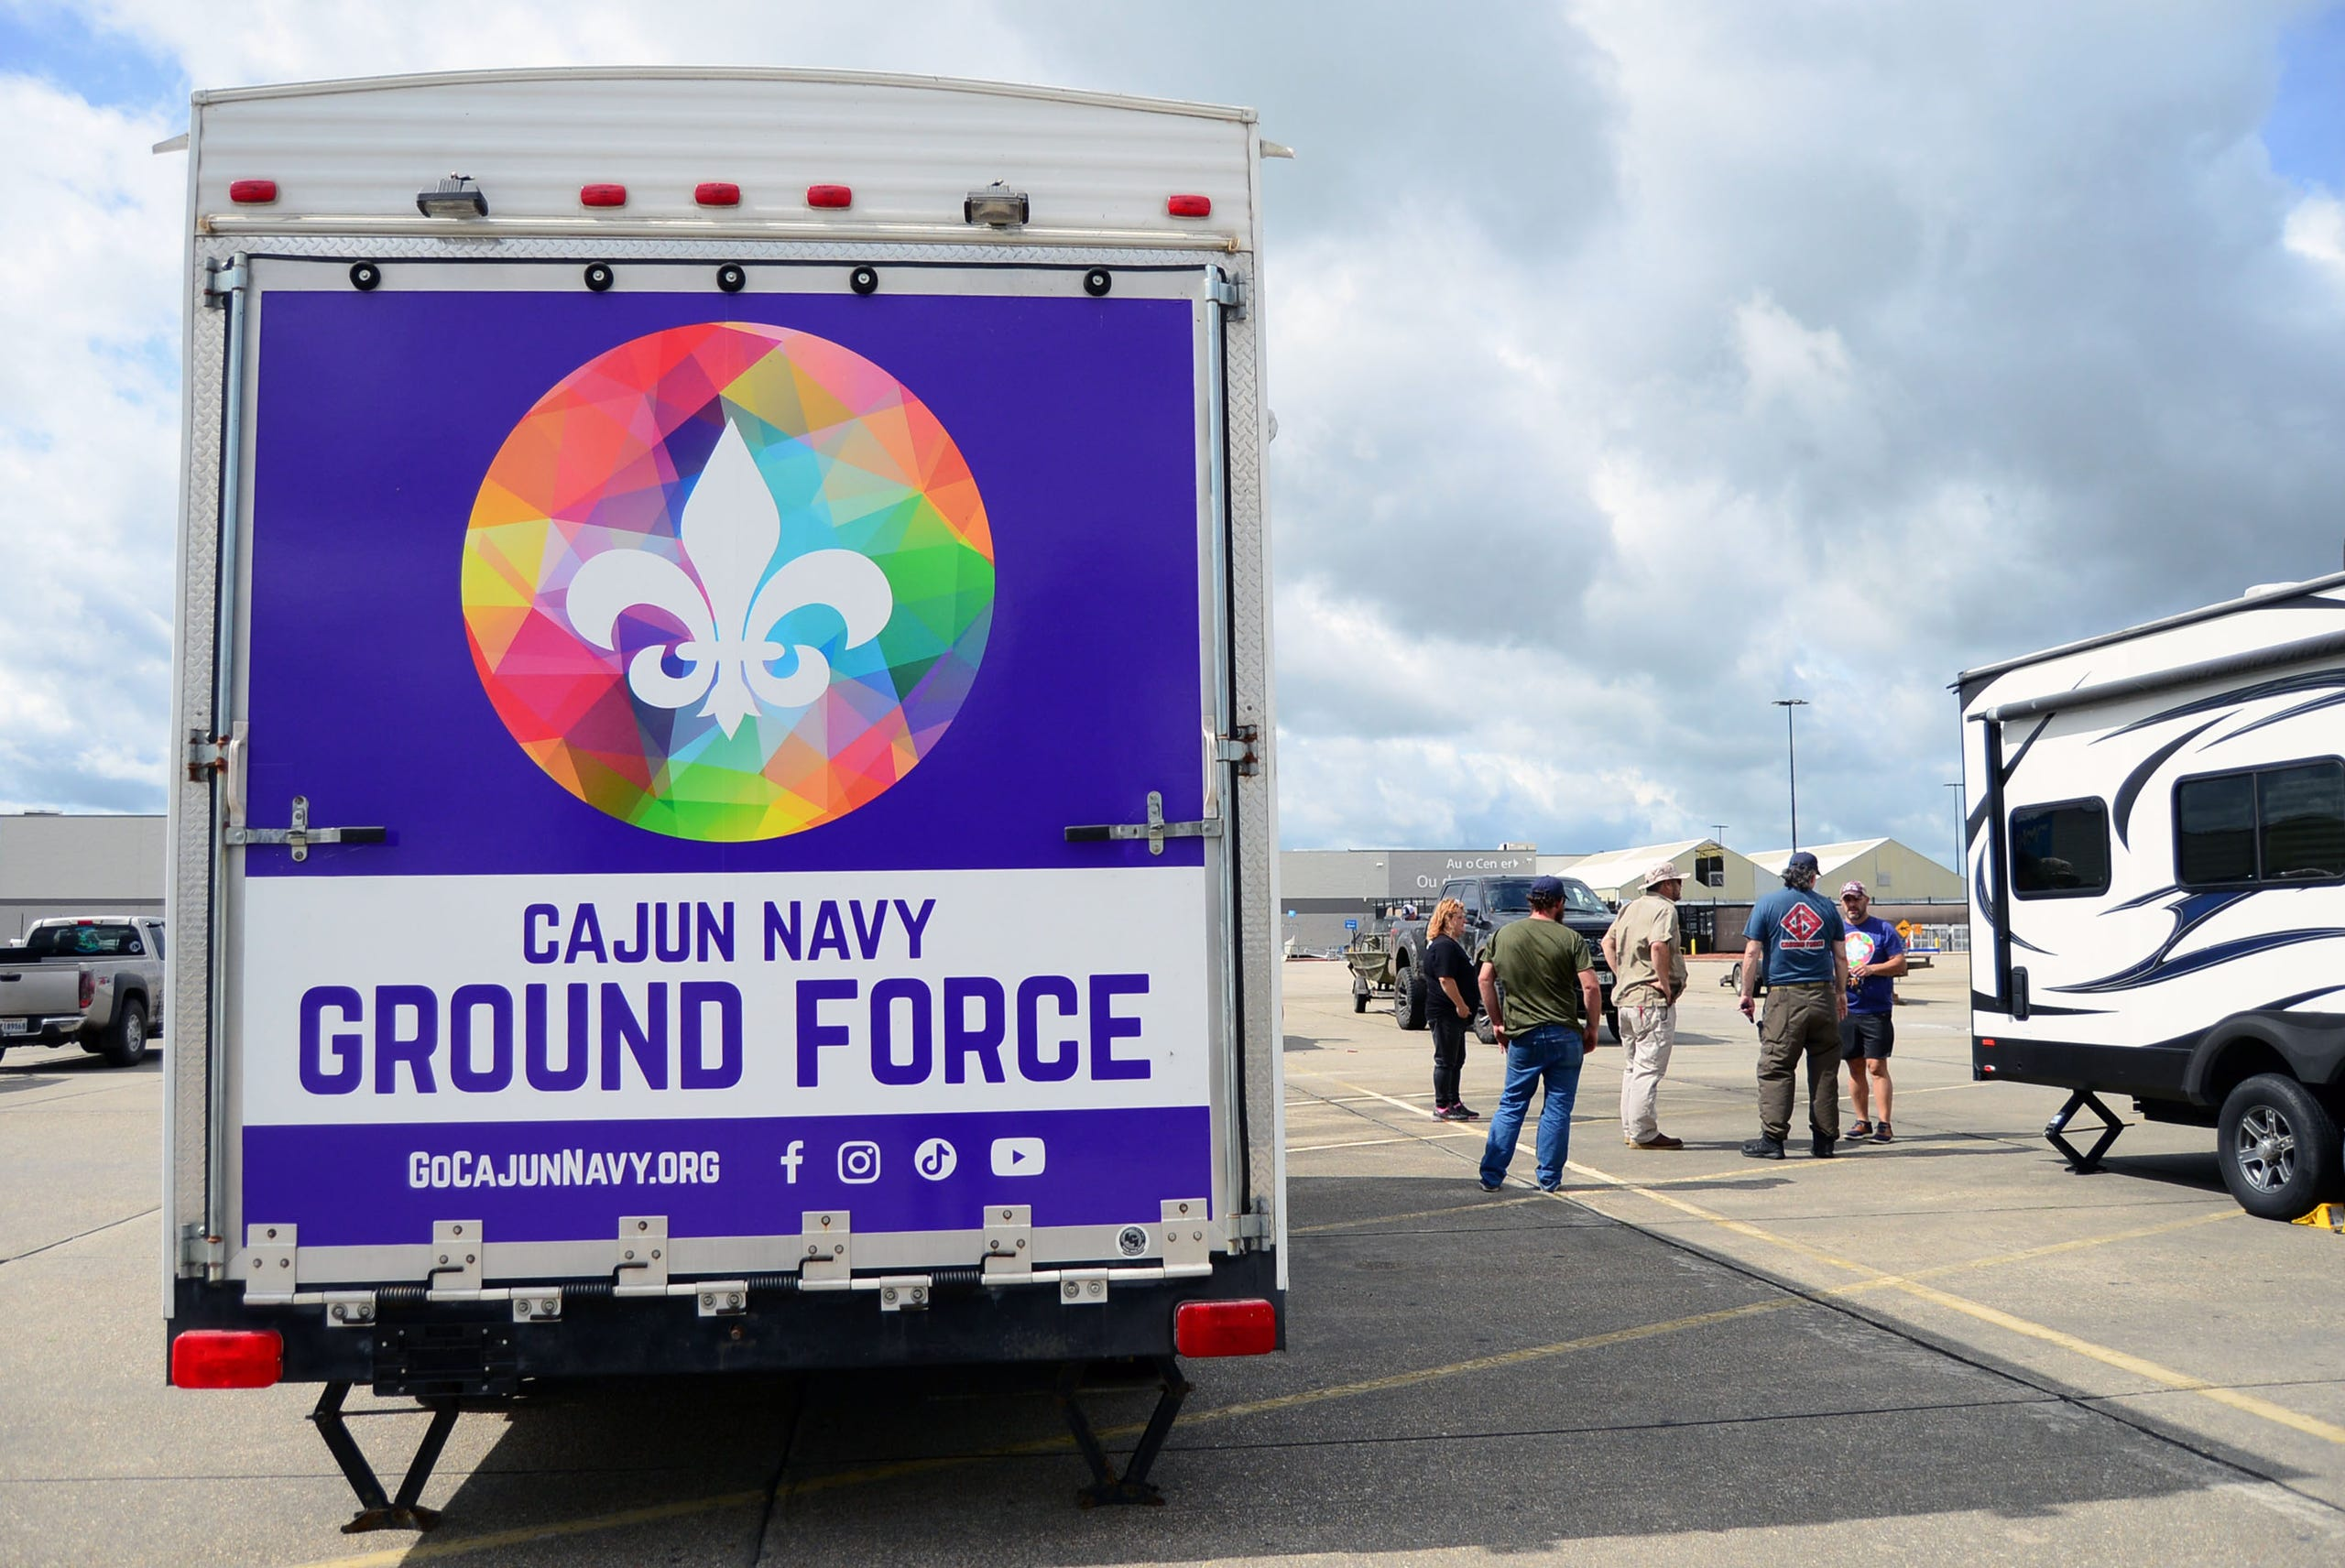 The Cajun Navy Ground Force set up its base of operations on Monday, Aug. 30, 2021, in the Walmart parking lot on Martin Luther King Jr., Blvd.